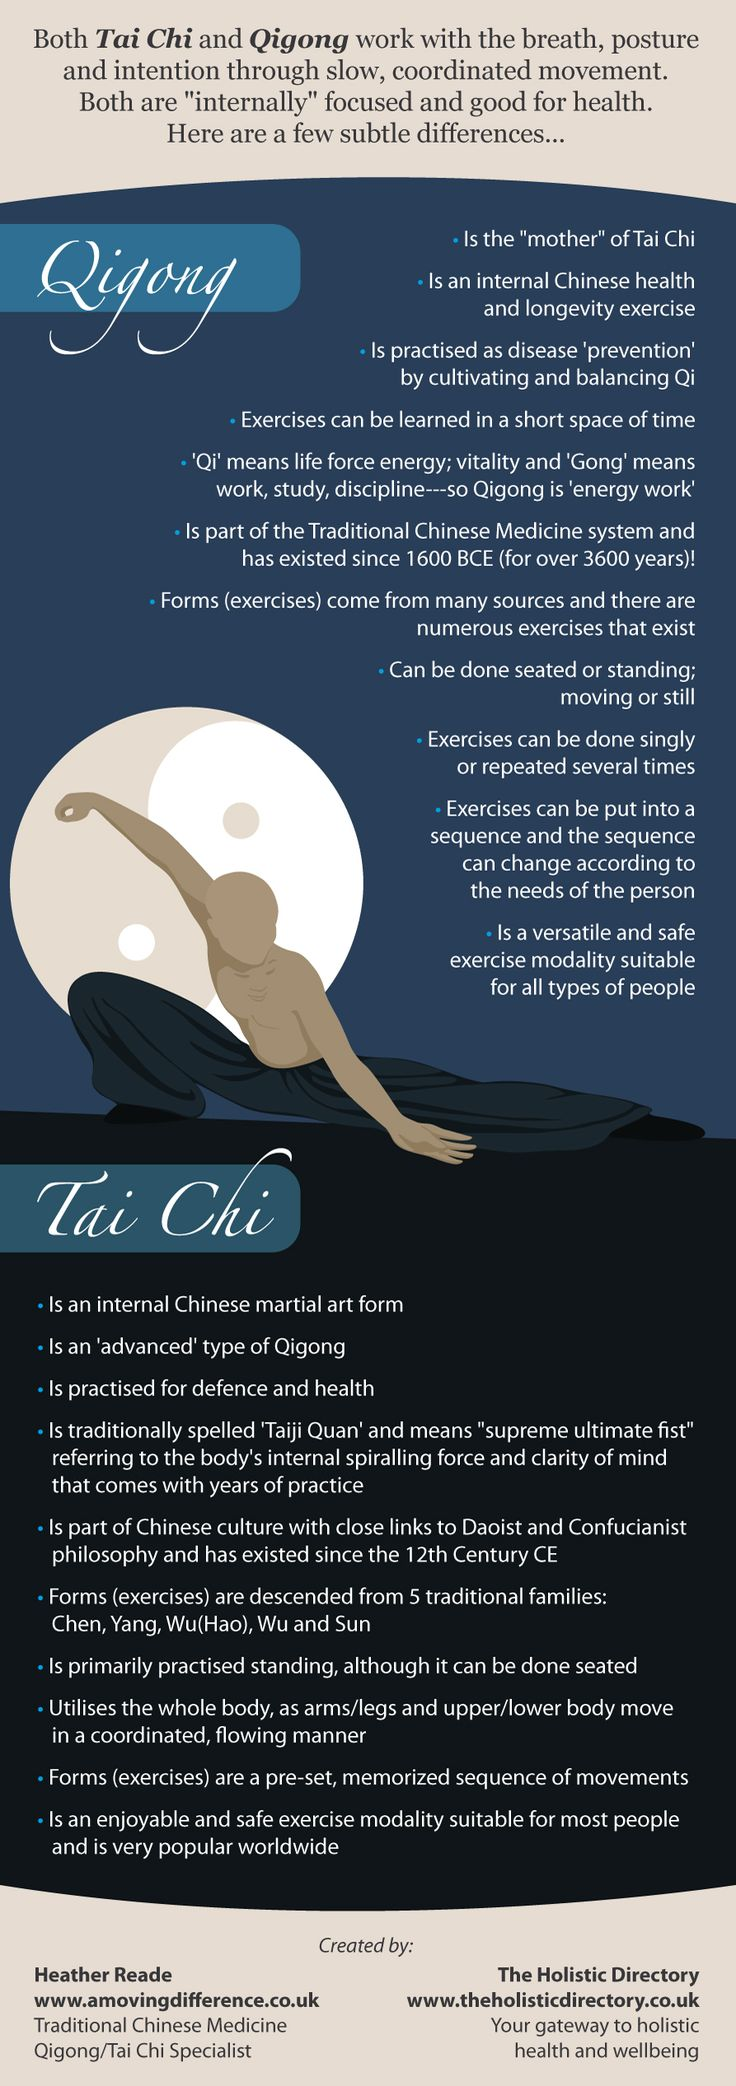 #Qigong or #Tai Chi… What's The Difference? By the #Holistic Directory Learn more @ drmalikov.com